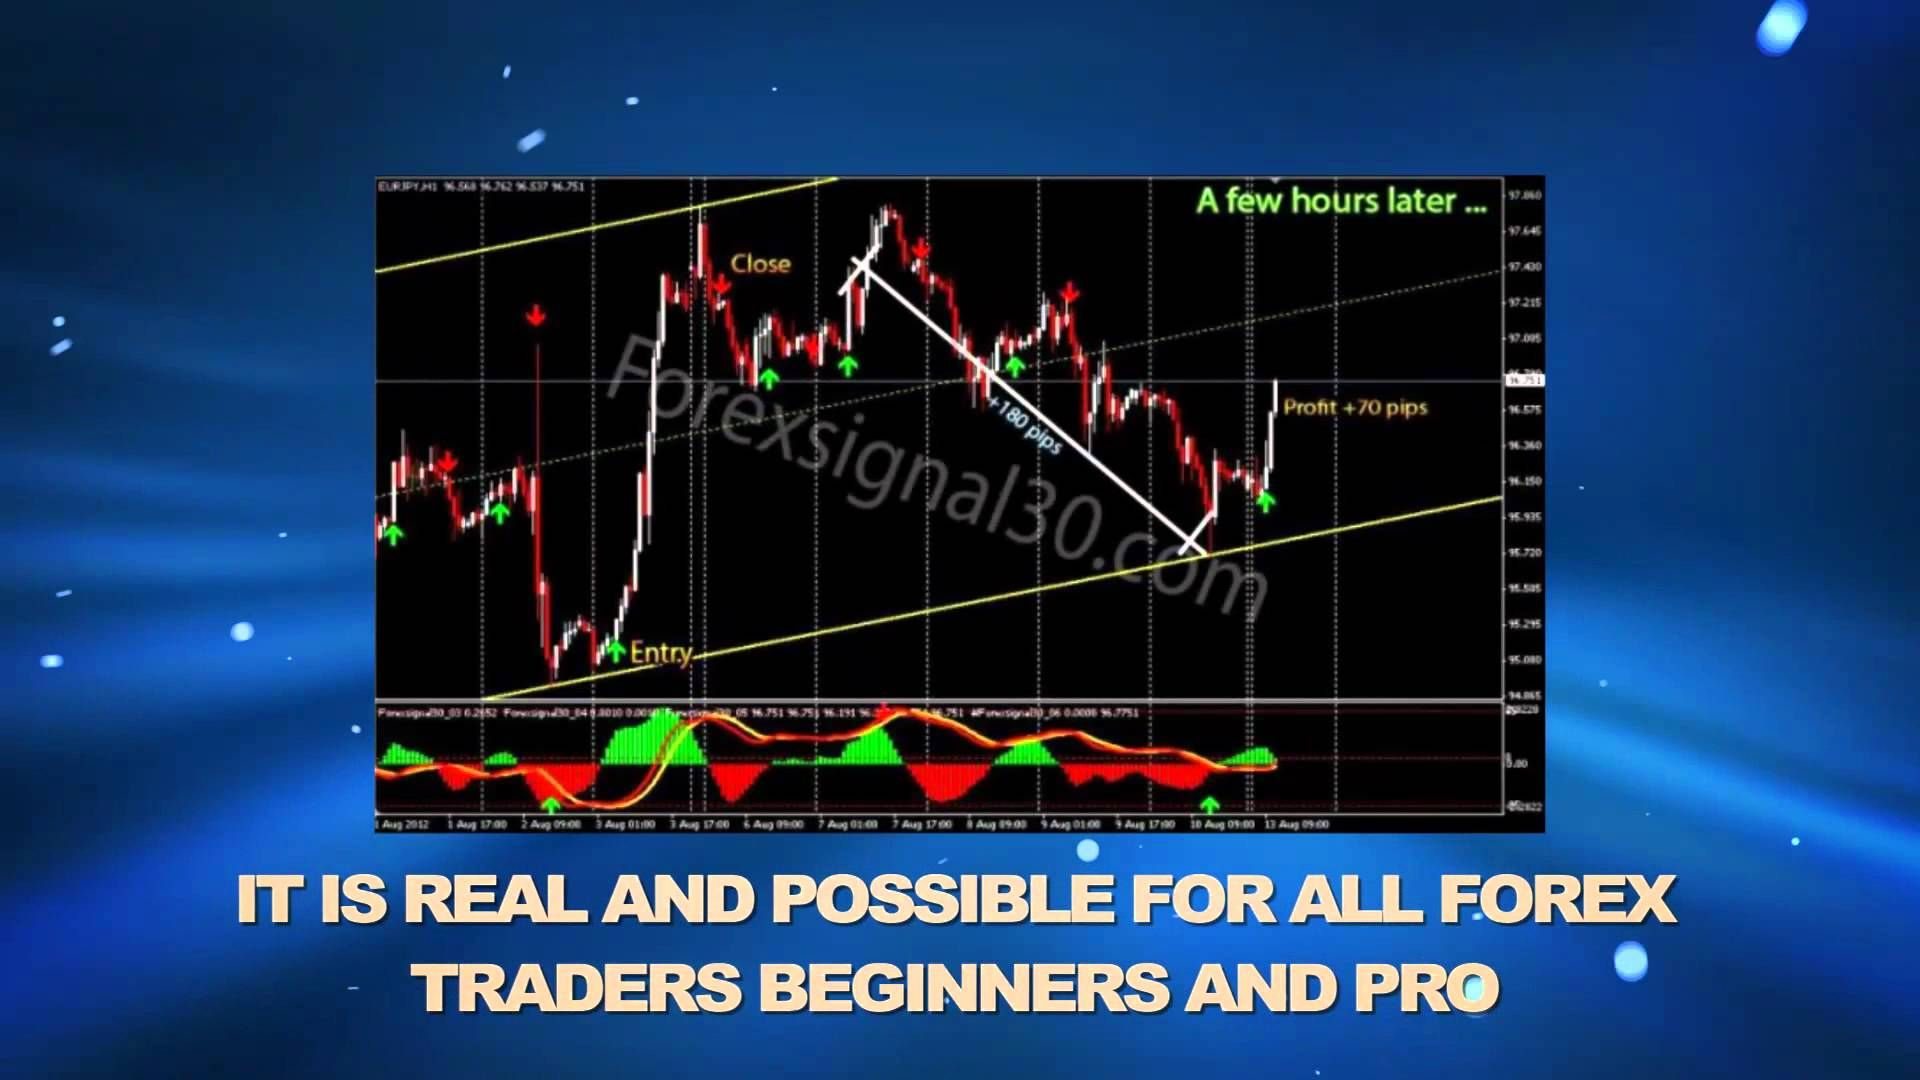 Http Www Forexsignal30 Com The Best Accurate Forex System